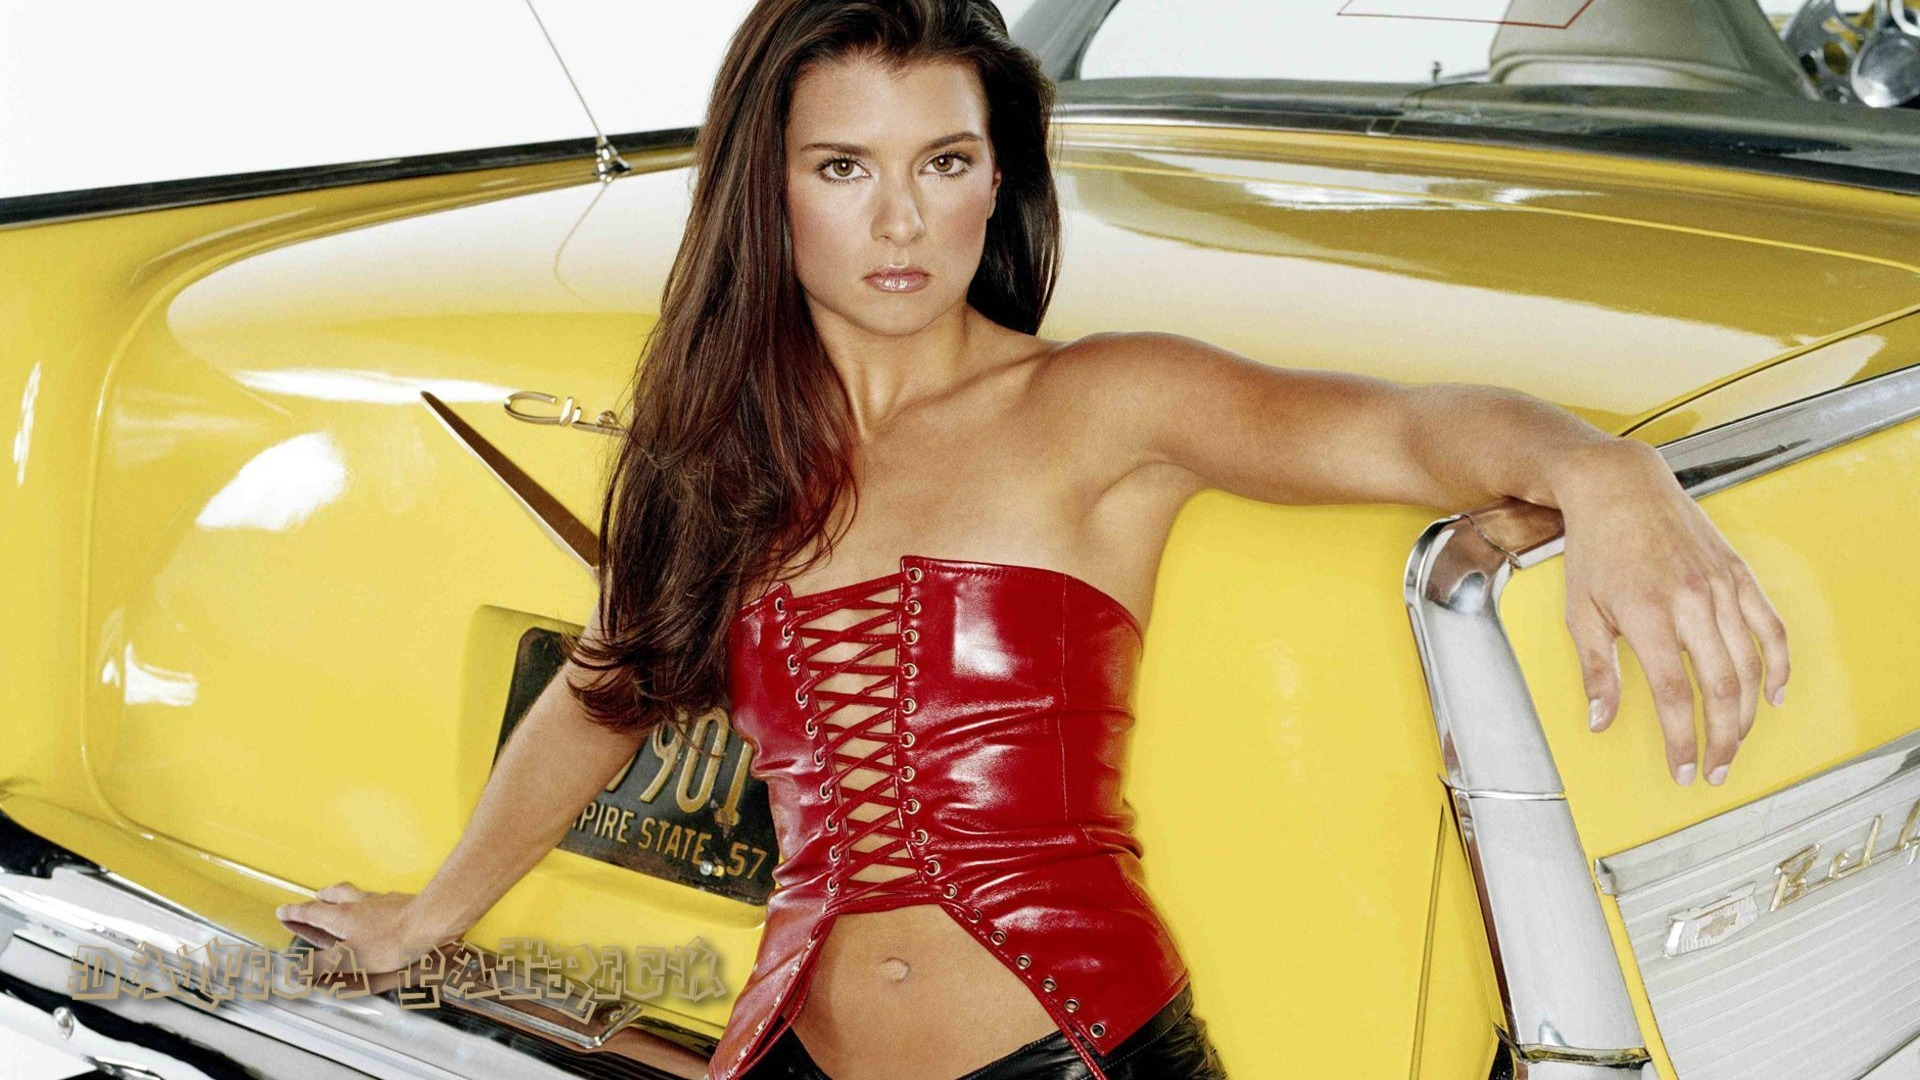 Pin Danica patrick pictures 1920x1080